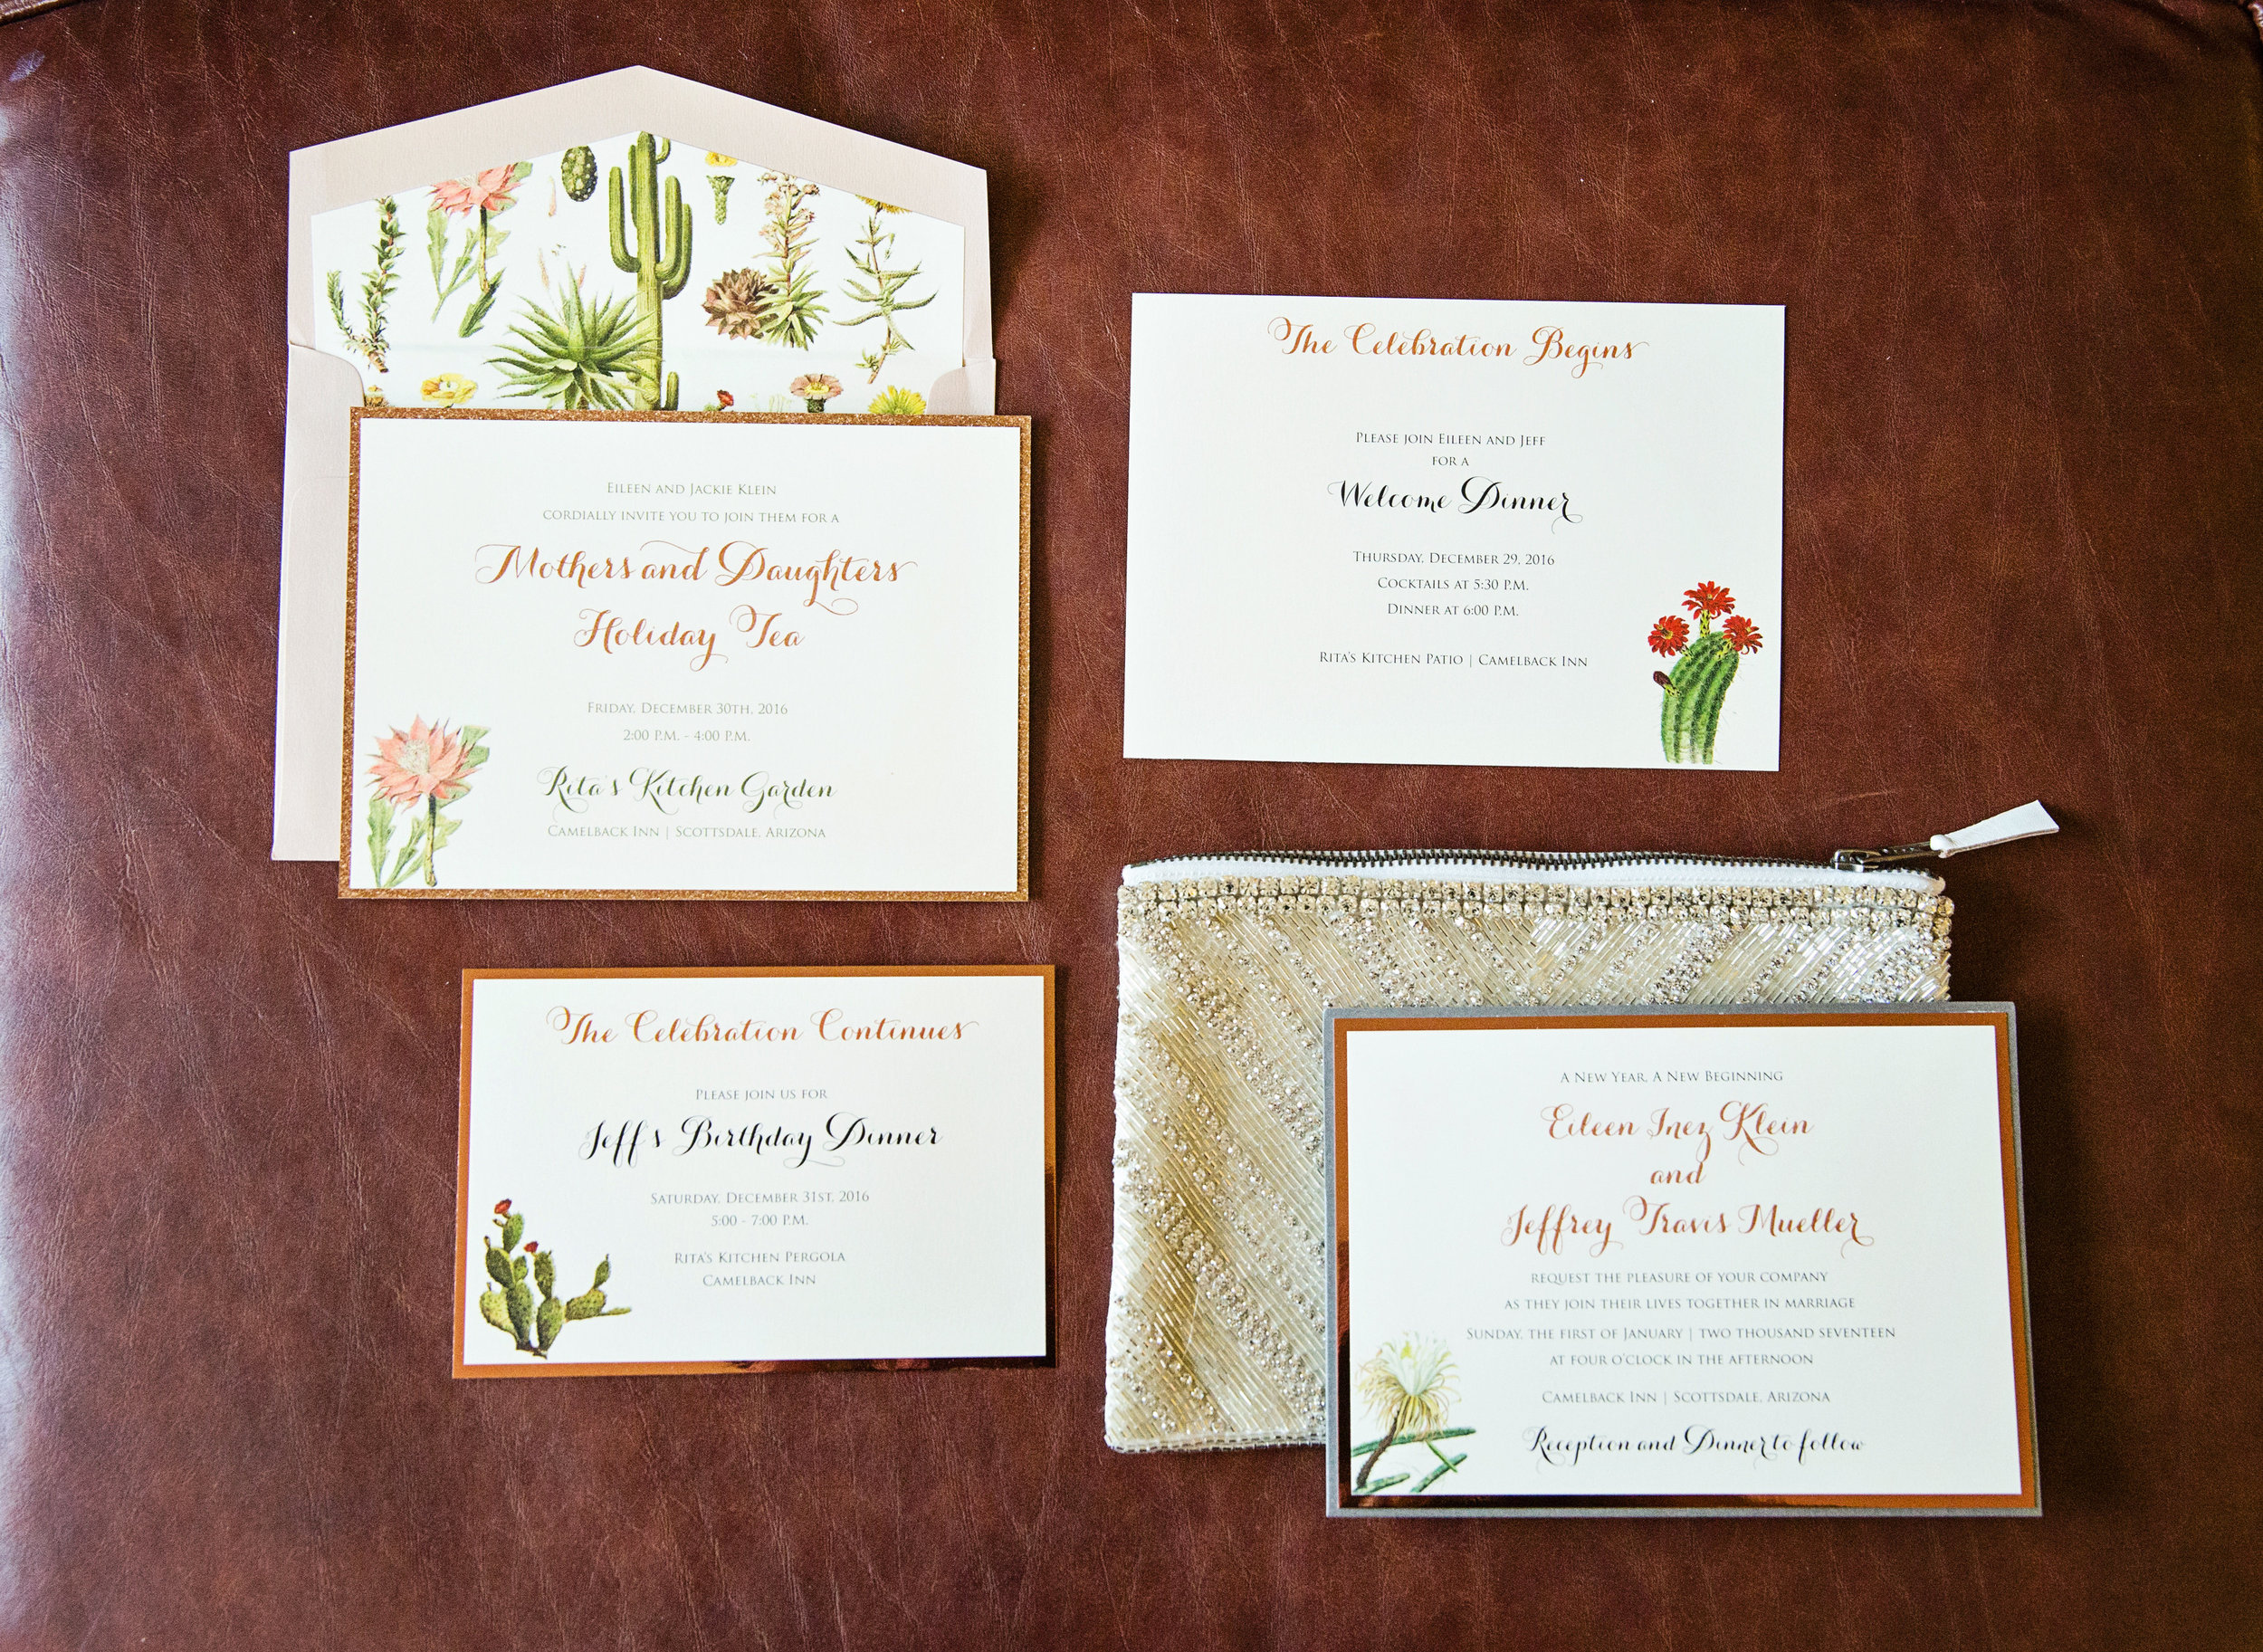 Invitation suite, rose gold invitations, cacti invitations, Arizona wedding invitations, wedding invitations.